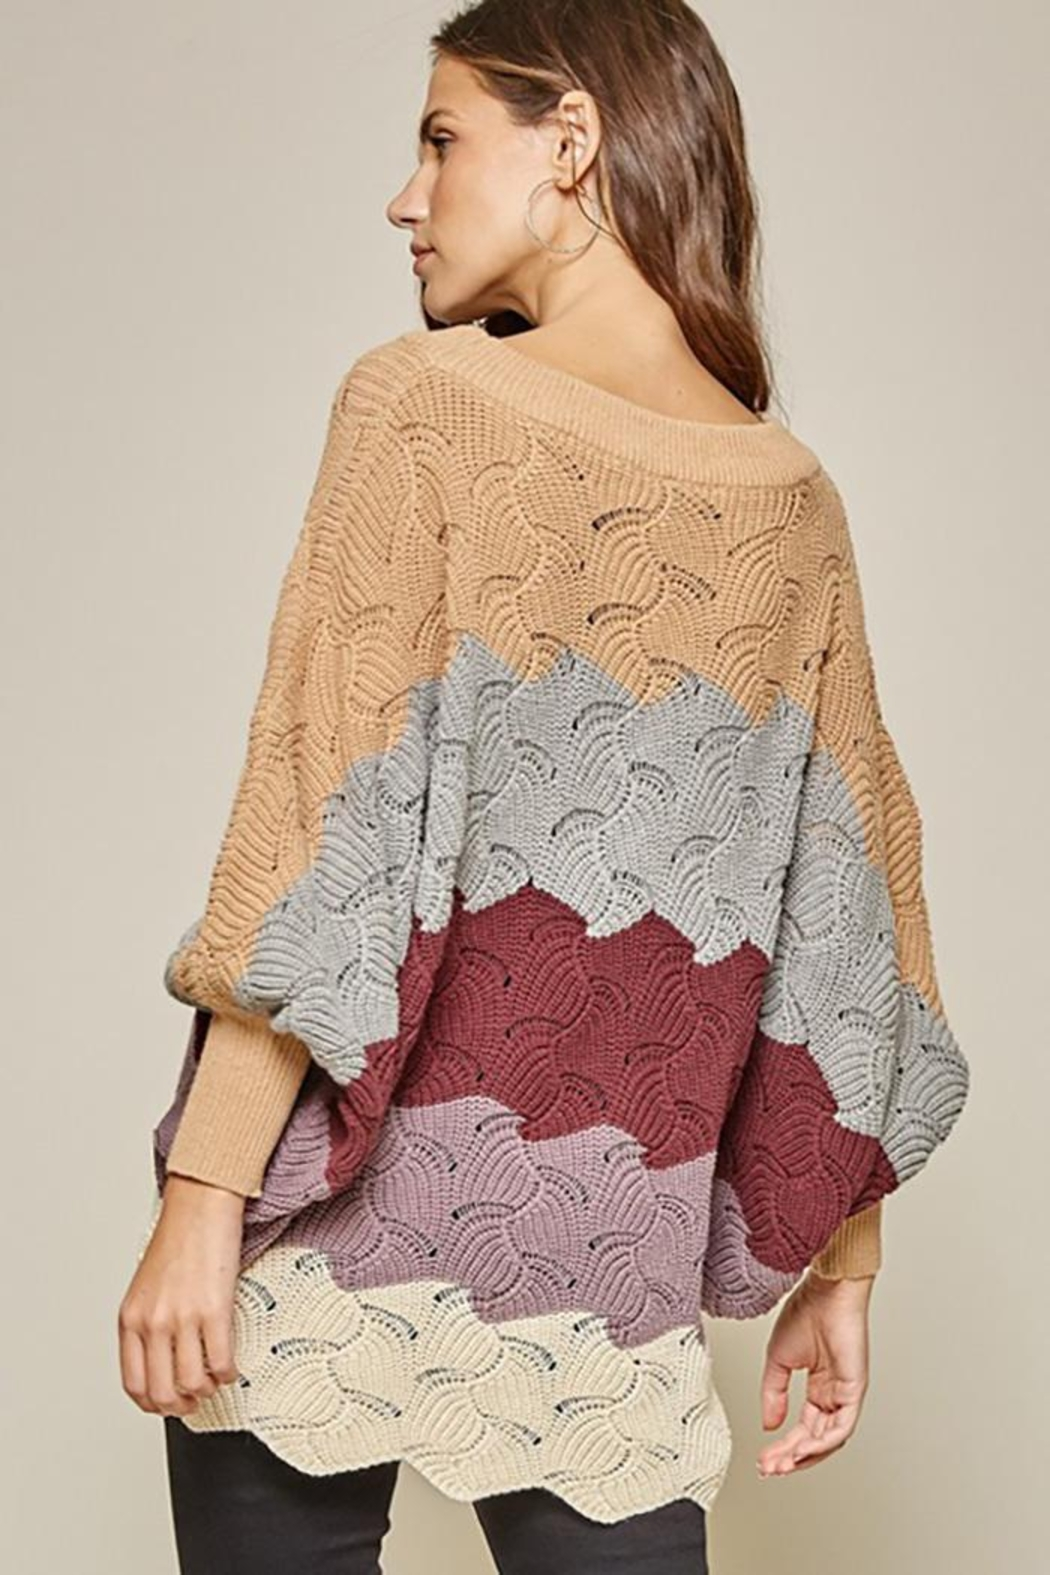 Andree by Unit Dolman Sleeves Oversized Fit Sweater - Front Full Image